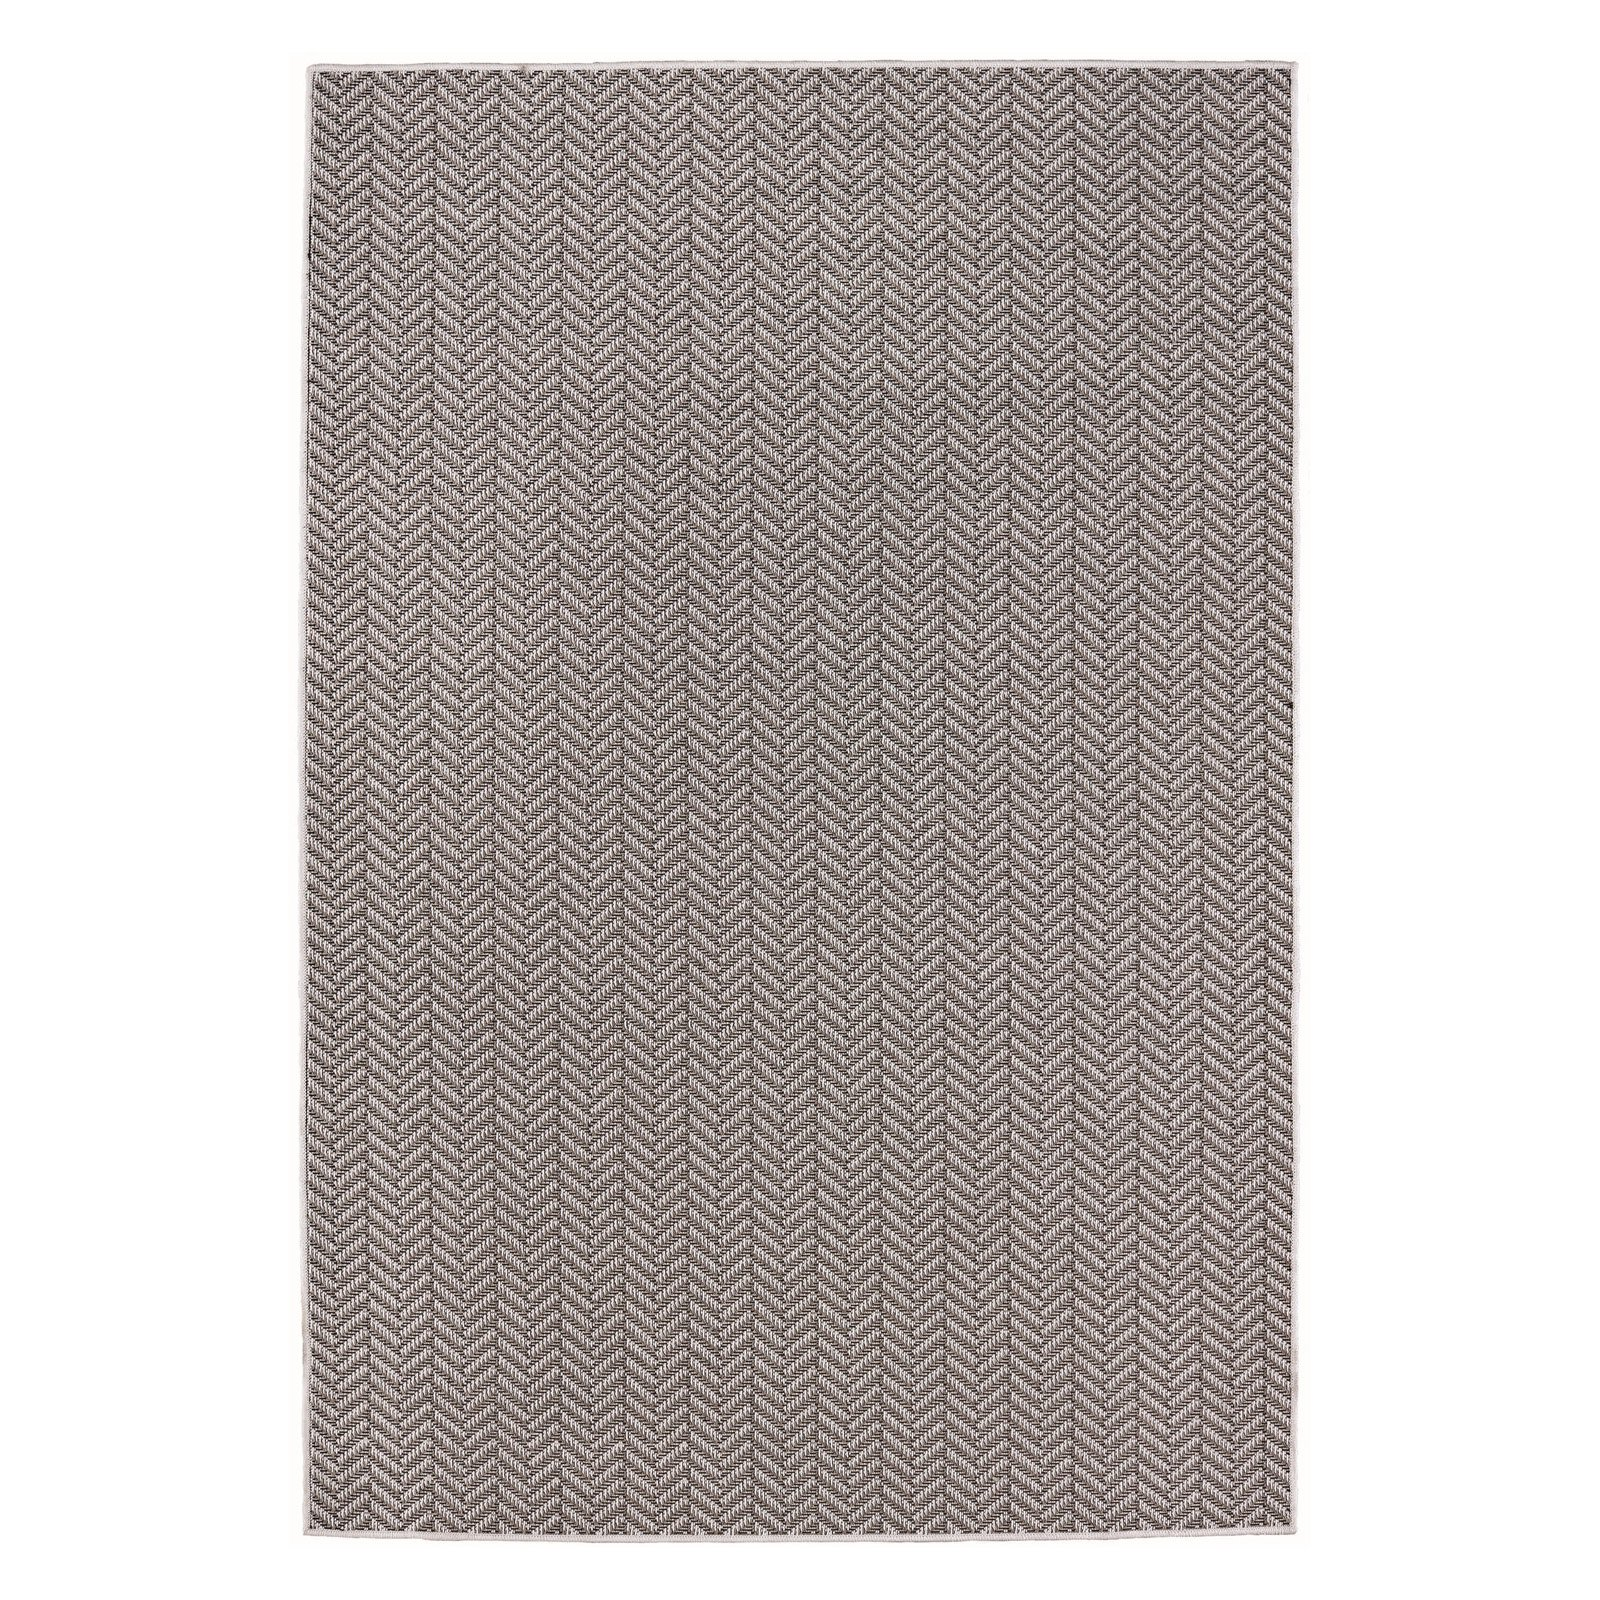 Mohawk Oasis Zig Zag Indoor/Outdoor Area Rug